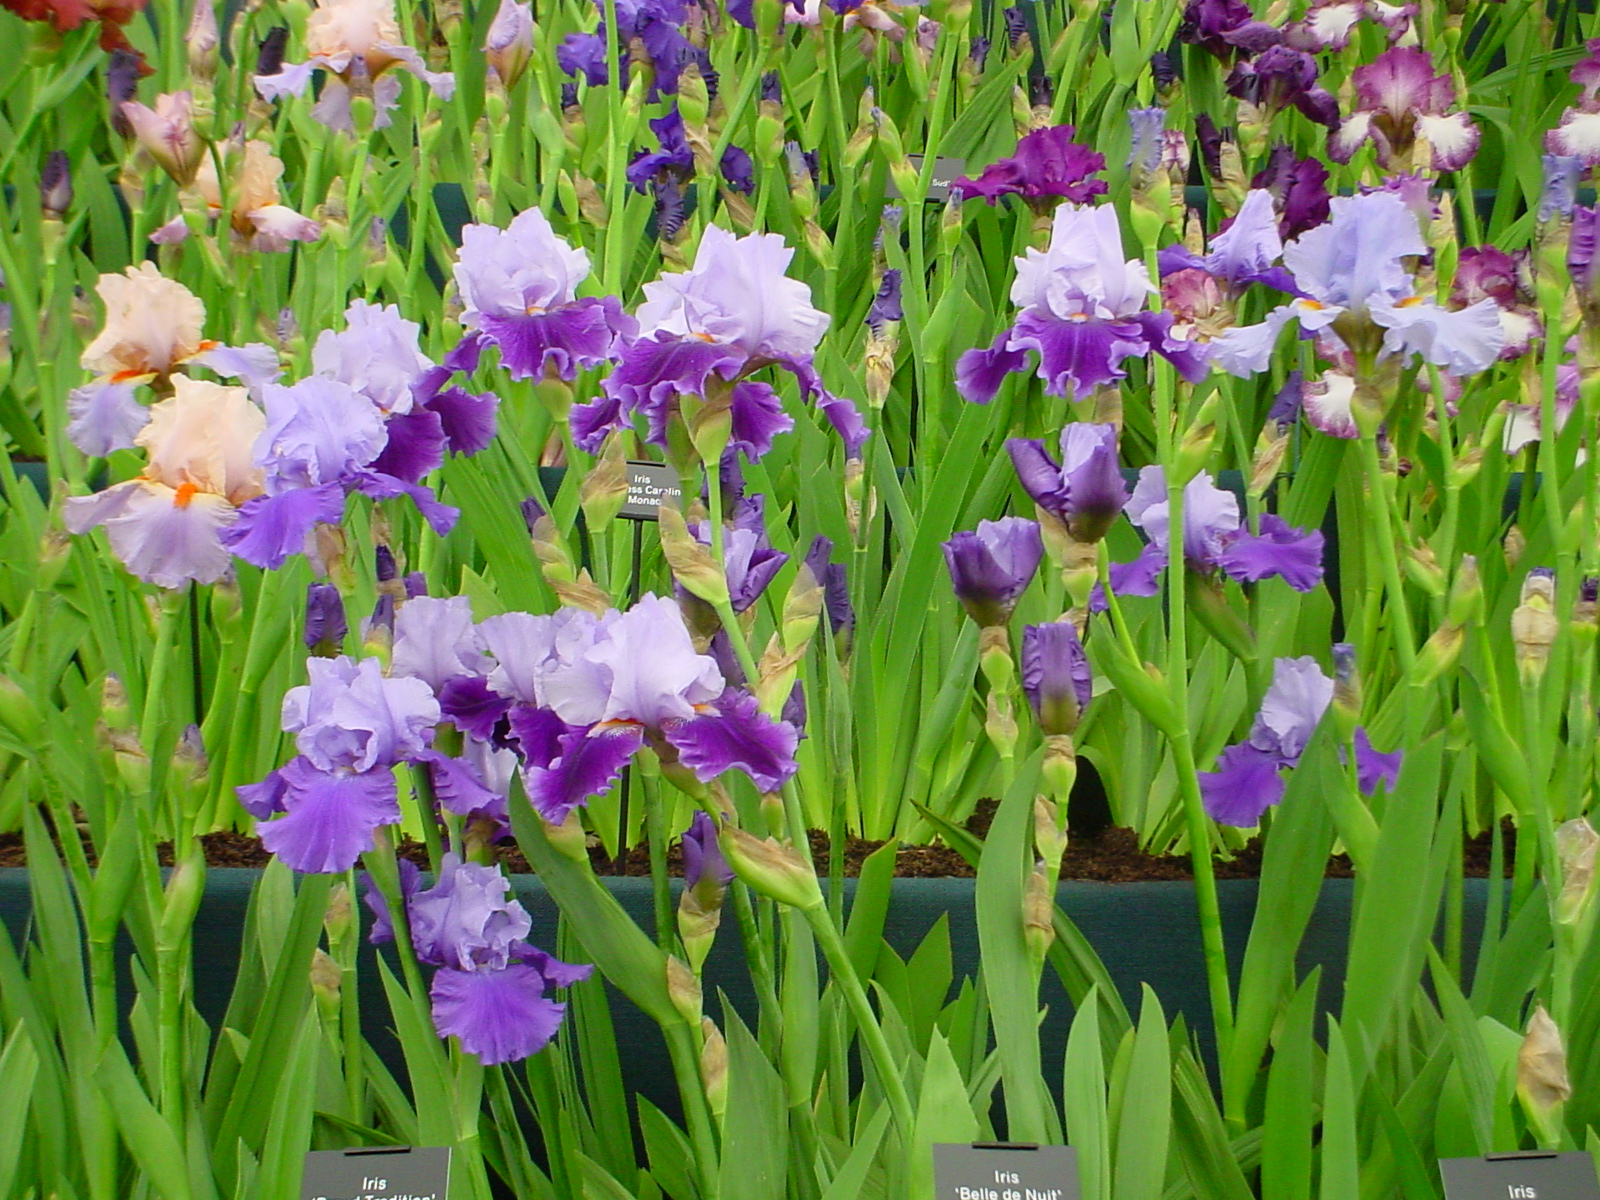 There are hundreds of varieties of this easy to grow perennial flower. Regular Irises come in several colors. Some are Bearded, while others are beardless. Regular Irises make great cut flowers, with their tall, sturdy stalks. Dwarf varieties grow much smaller, less than eight inches tall.